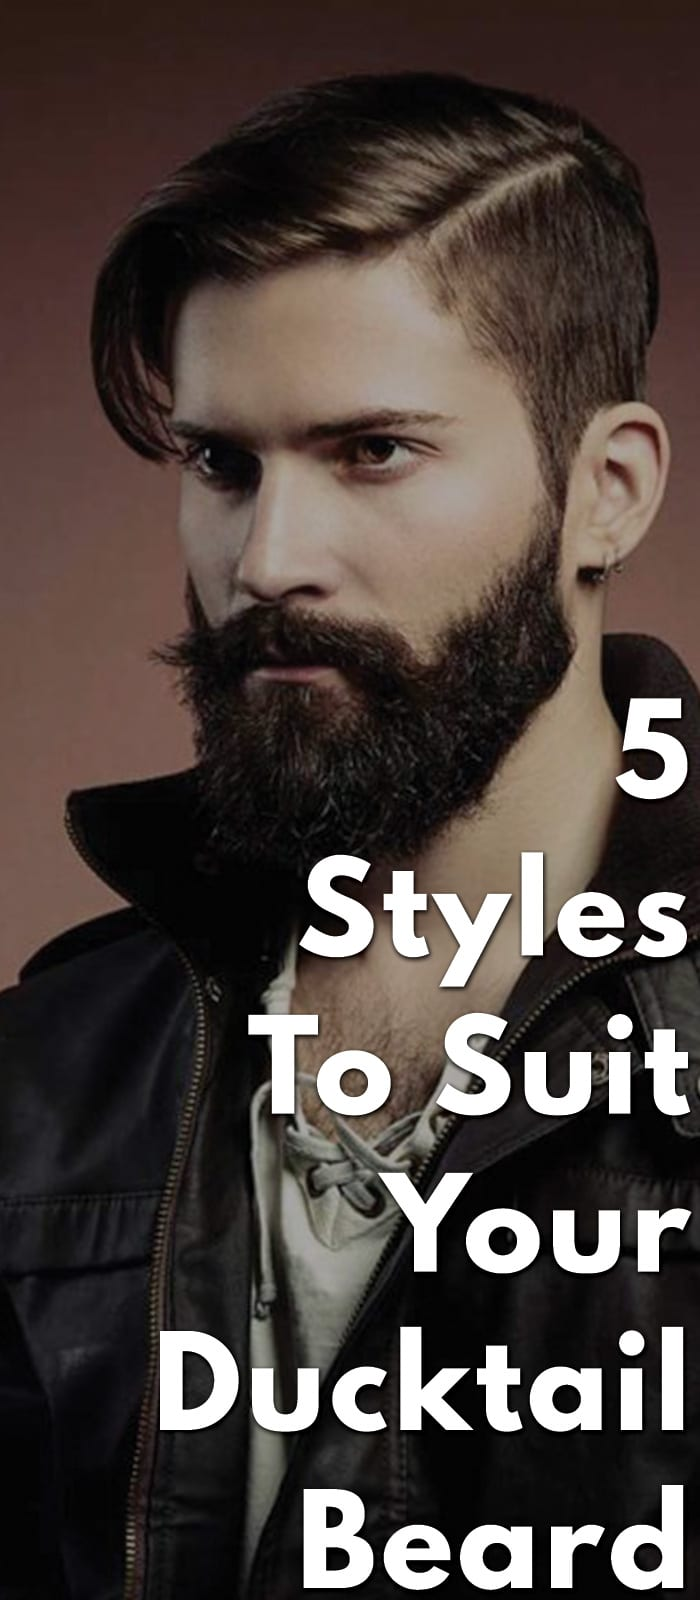 5-Styles-To-Suit-Your-Ducktail-Beard.